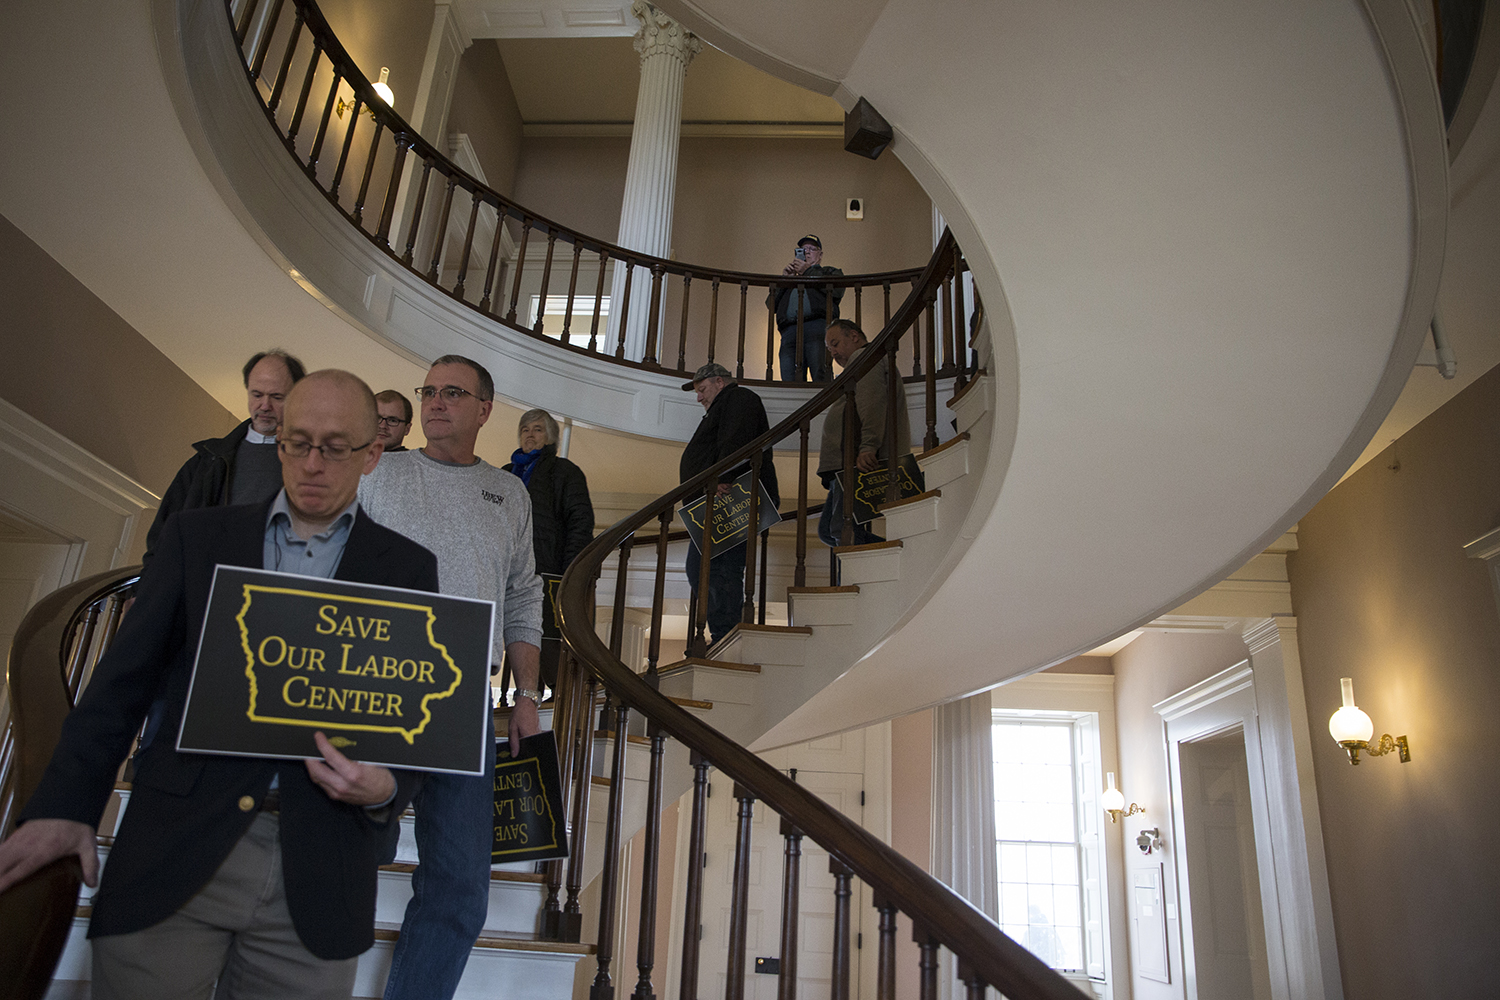 Crowd members move out of the meeting room to walk to President Bruce Harreld's office during the Labor Center Statewide Summit in the Old Capitol Senate Chambers on Monday Dec. 3, 2018. Members of the university and the community addressed concerns over the Labor Center closure before taking their petition to Harreld's office.